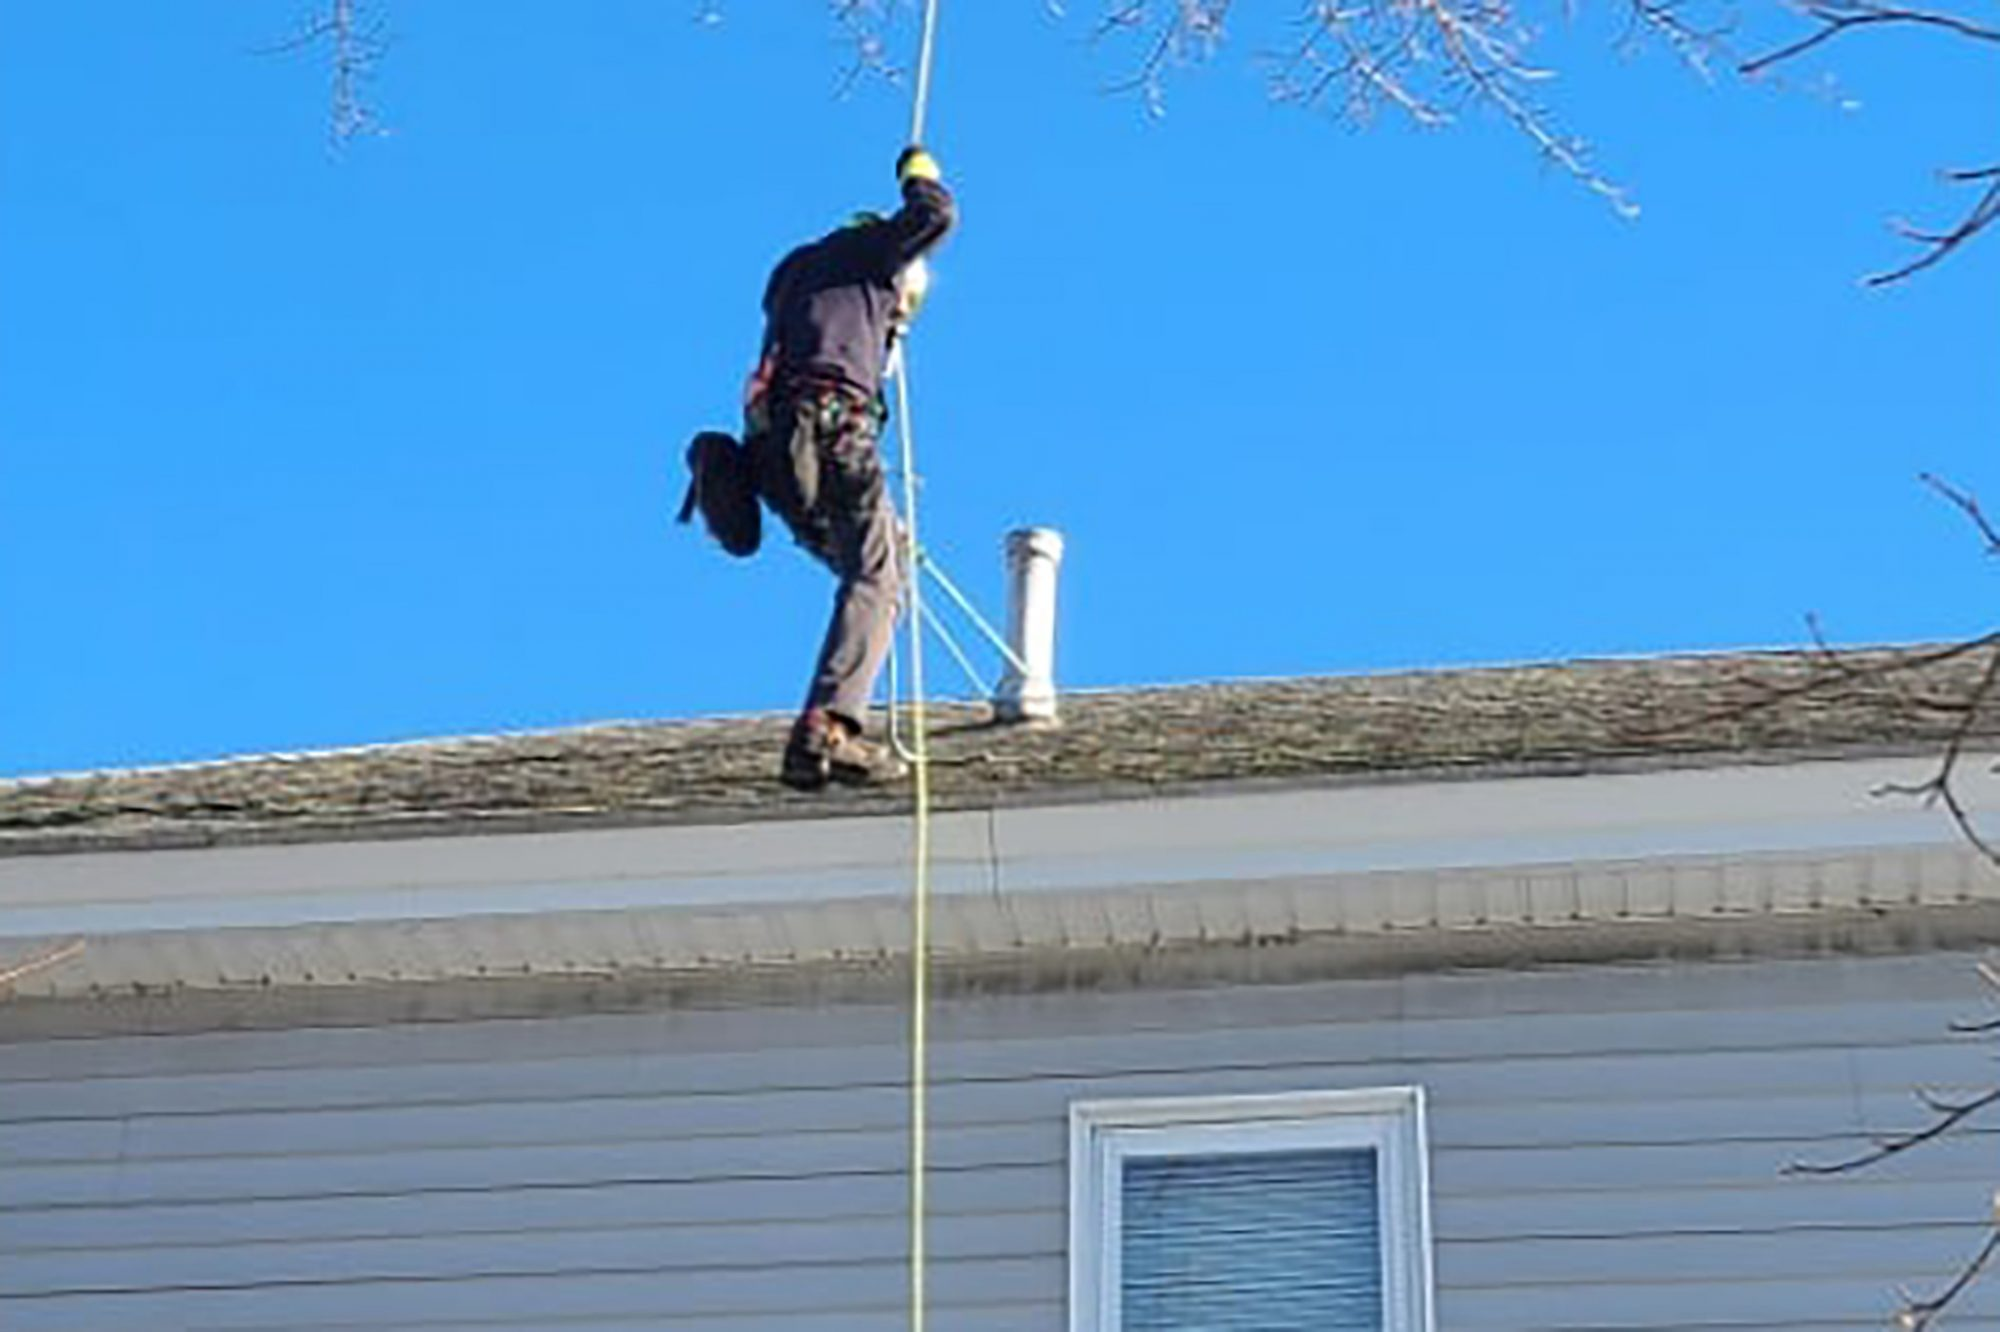 Man lands on roof from below